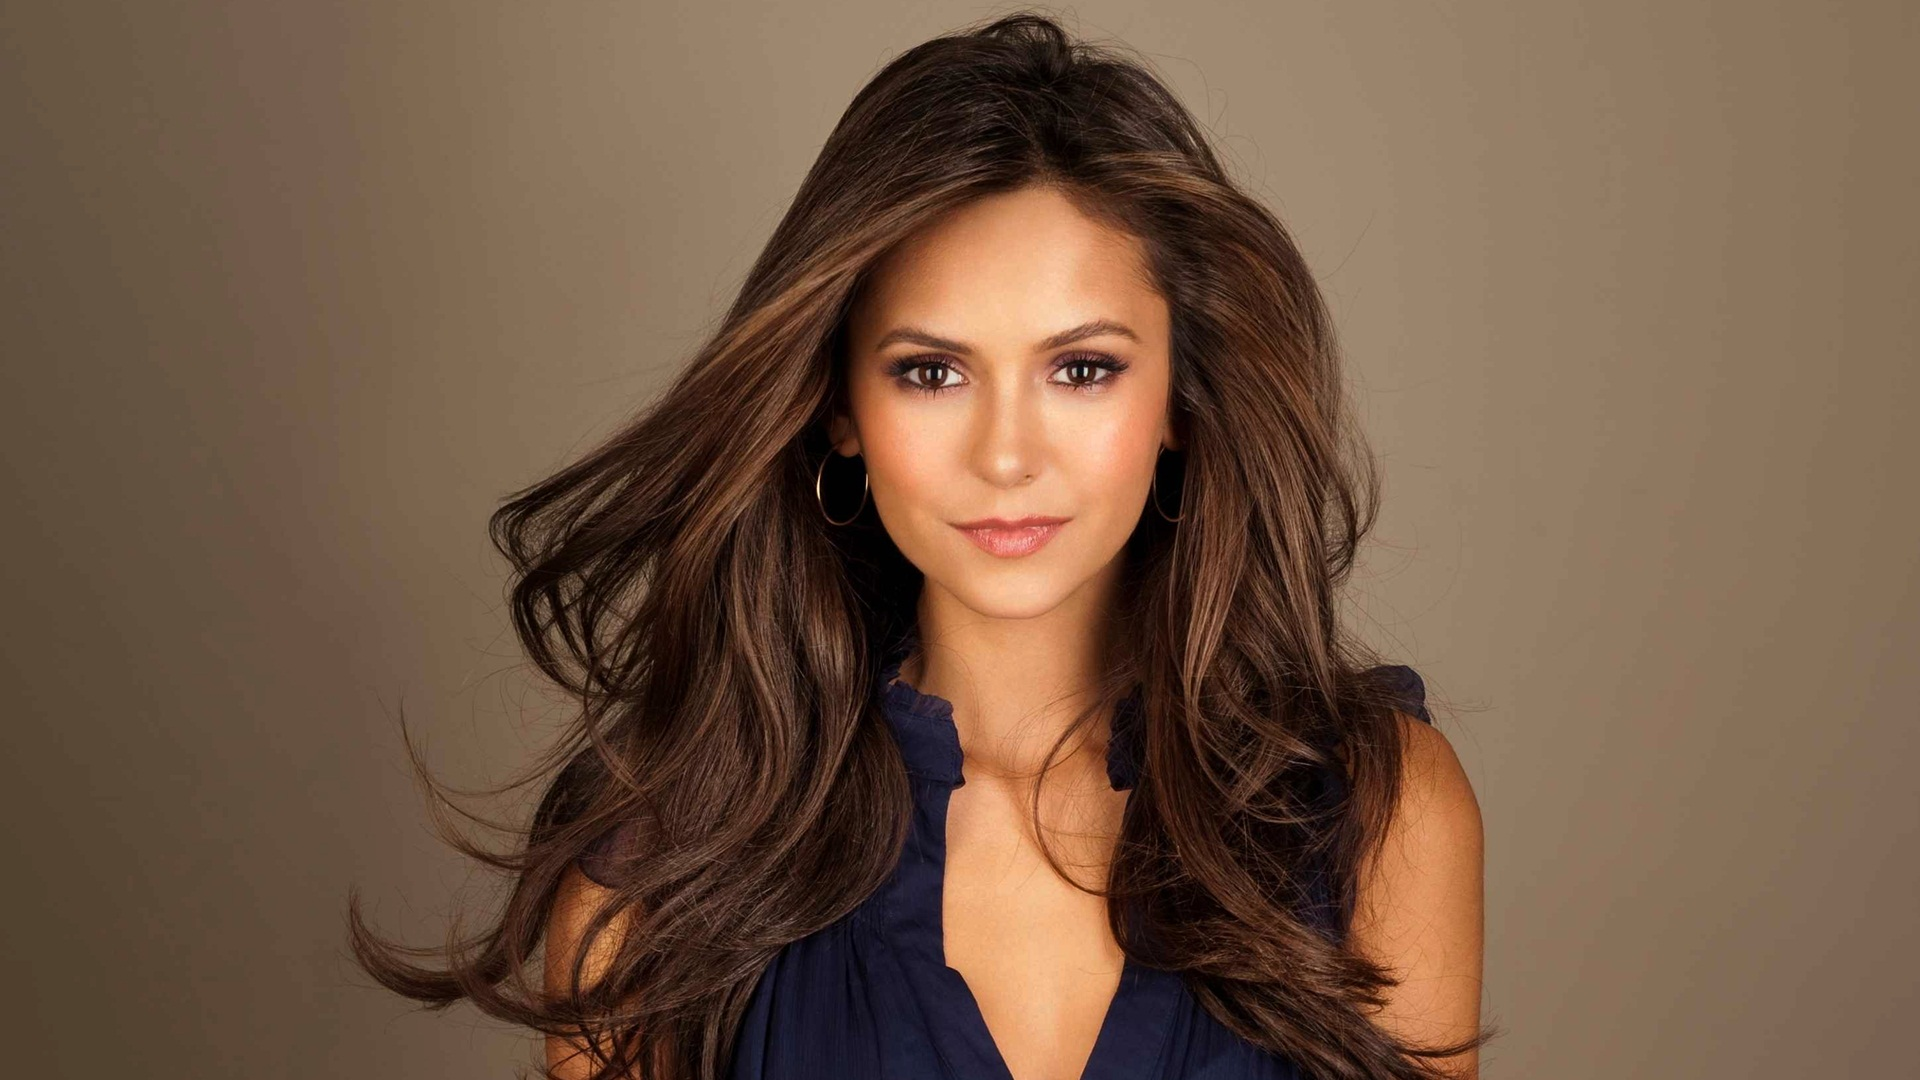 pictures nina dobrev wallpaper nina dobrev wallpaper nina Car Pictures